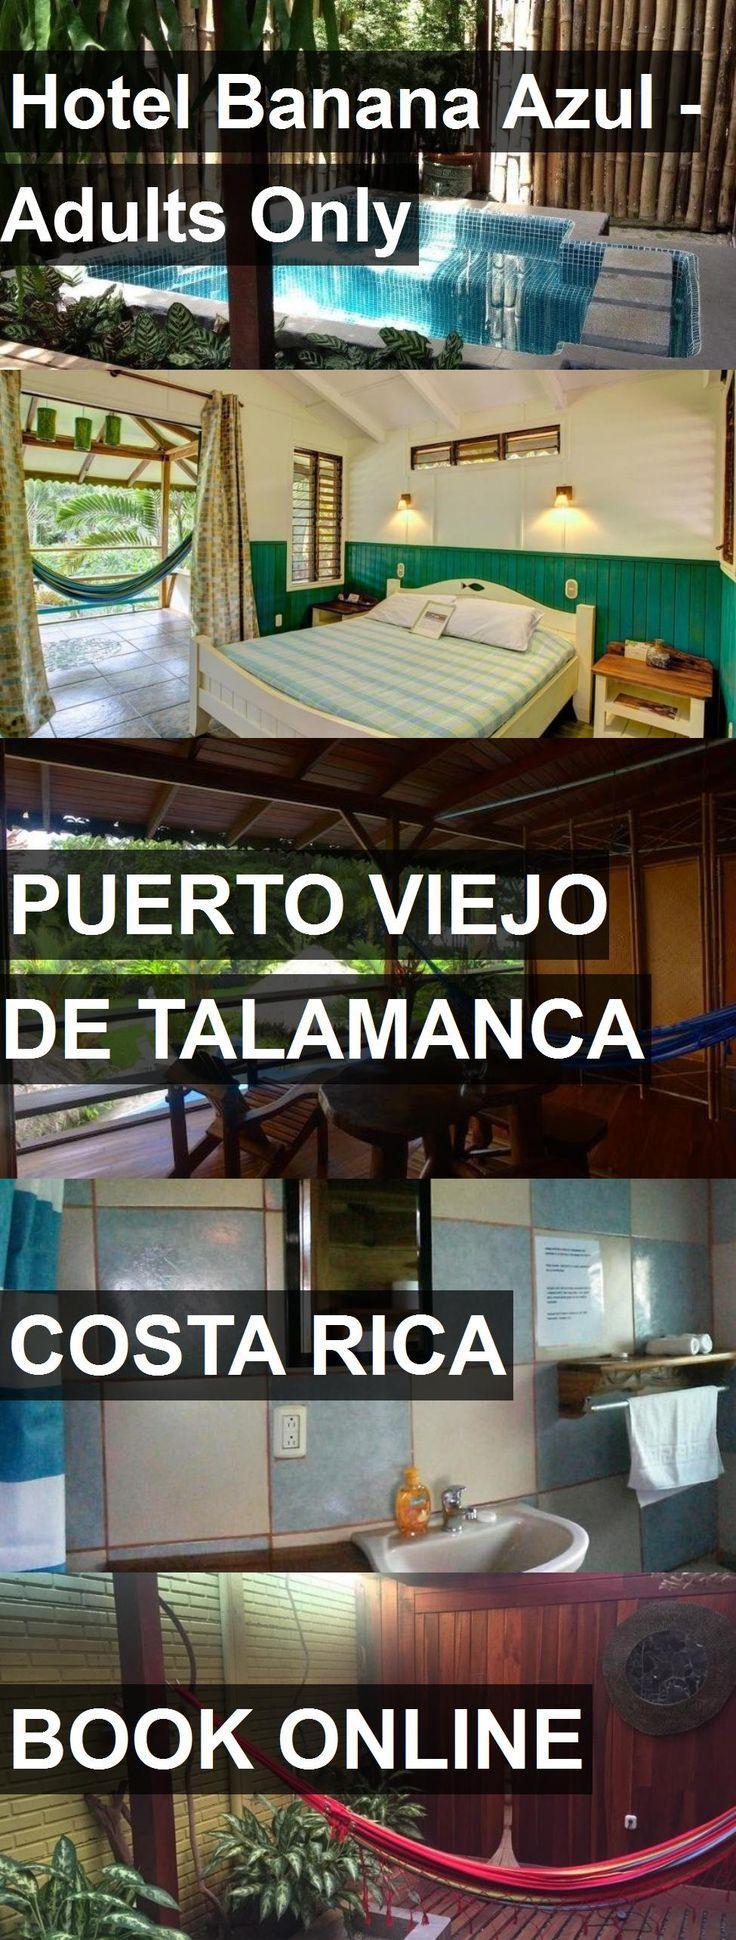 Hotel Hotel Banana Azul - Adults Only in Puerto Viejo de Talamanca, Costa Rica. For more information, photos, reviews and best prices please follow the link. #CostaRica #PuertoViejodeTalamanca #hotel #travel #vacation